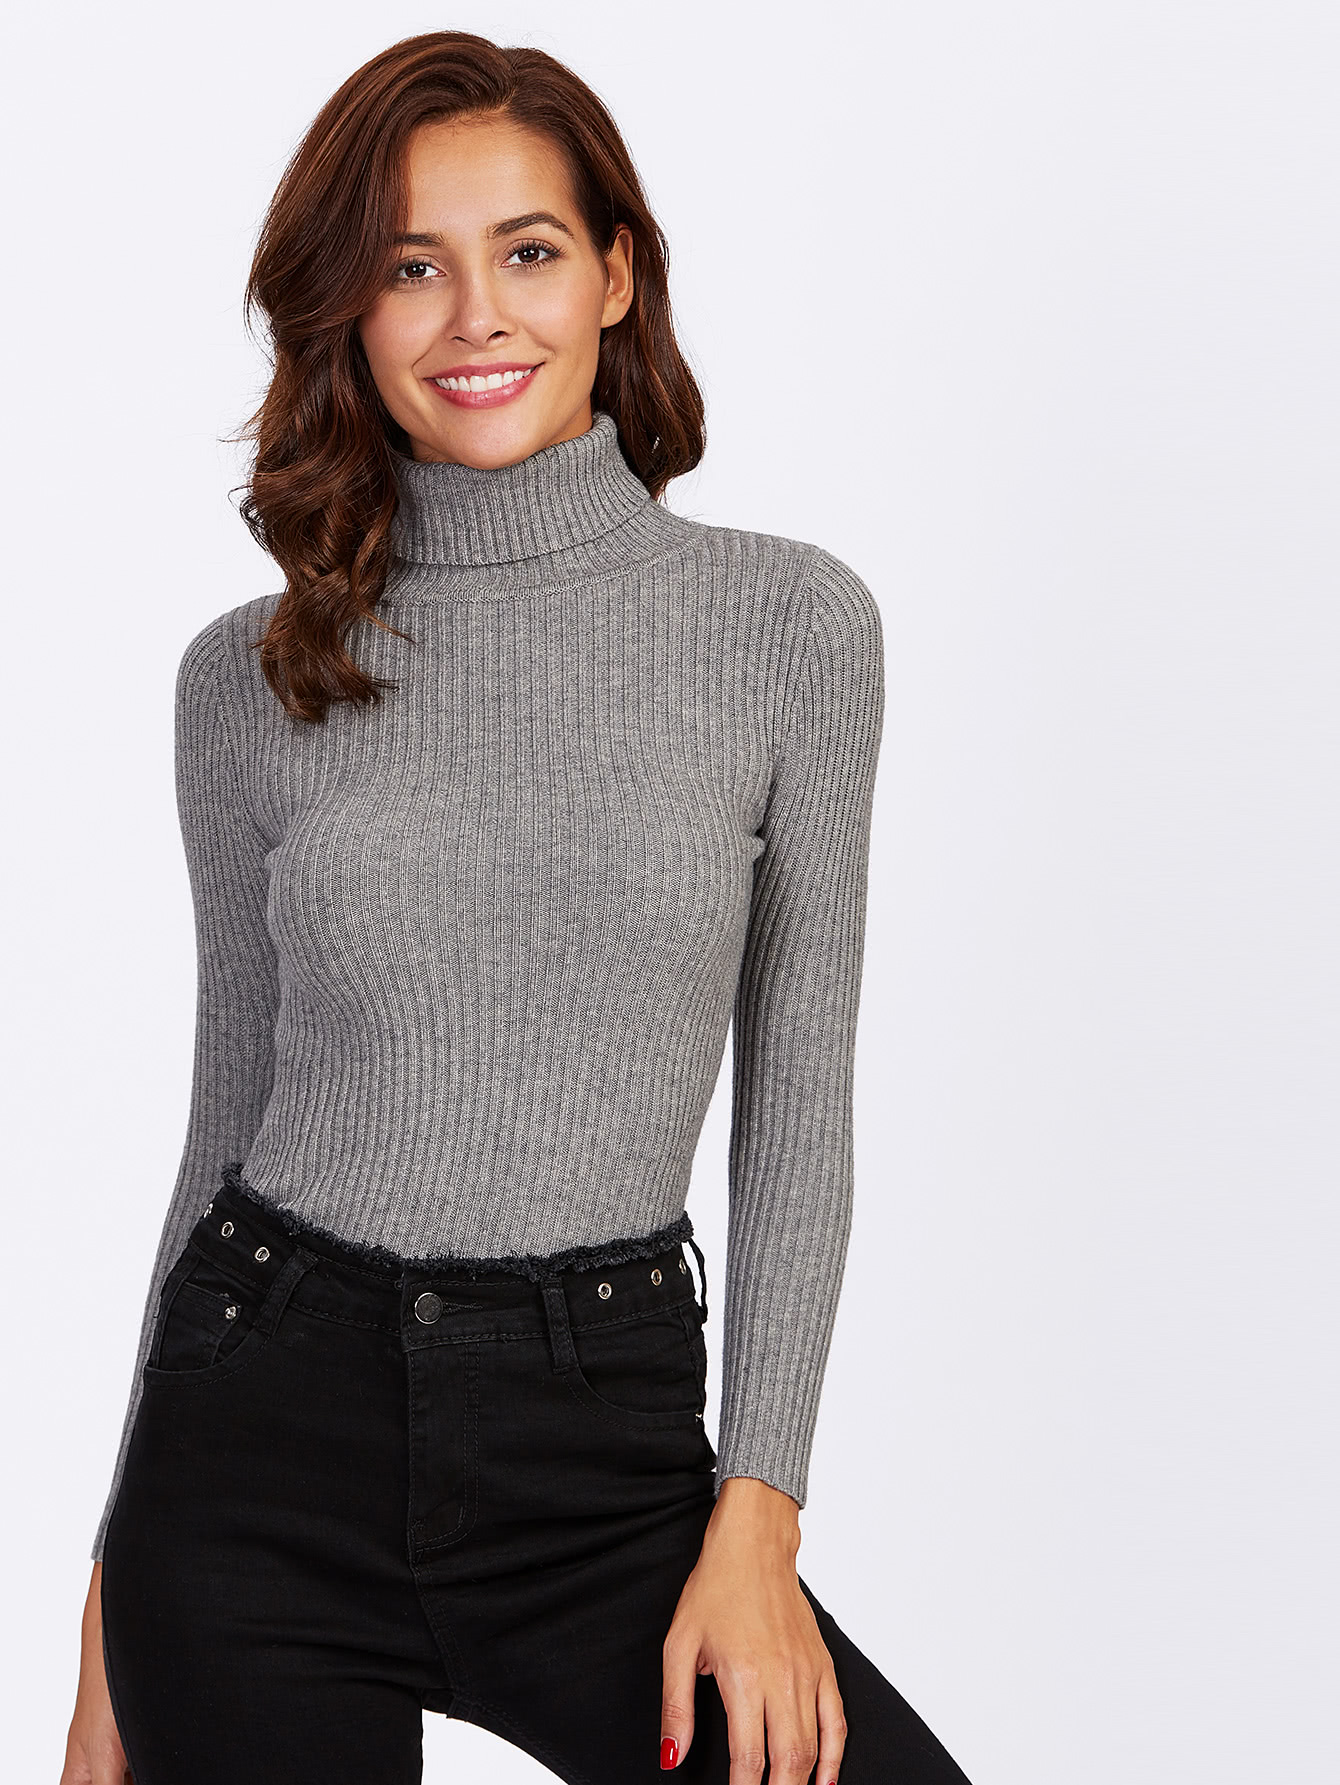 Rolled Neck Ribbed Knit Fitted Sweater sweater171012466